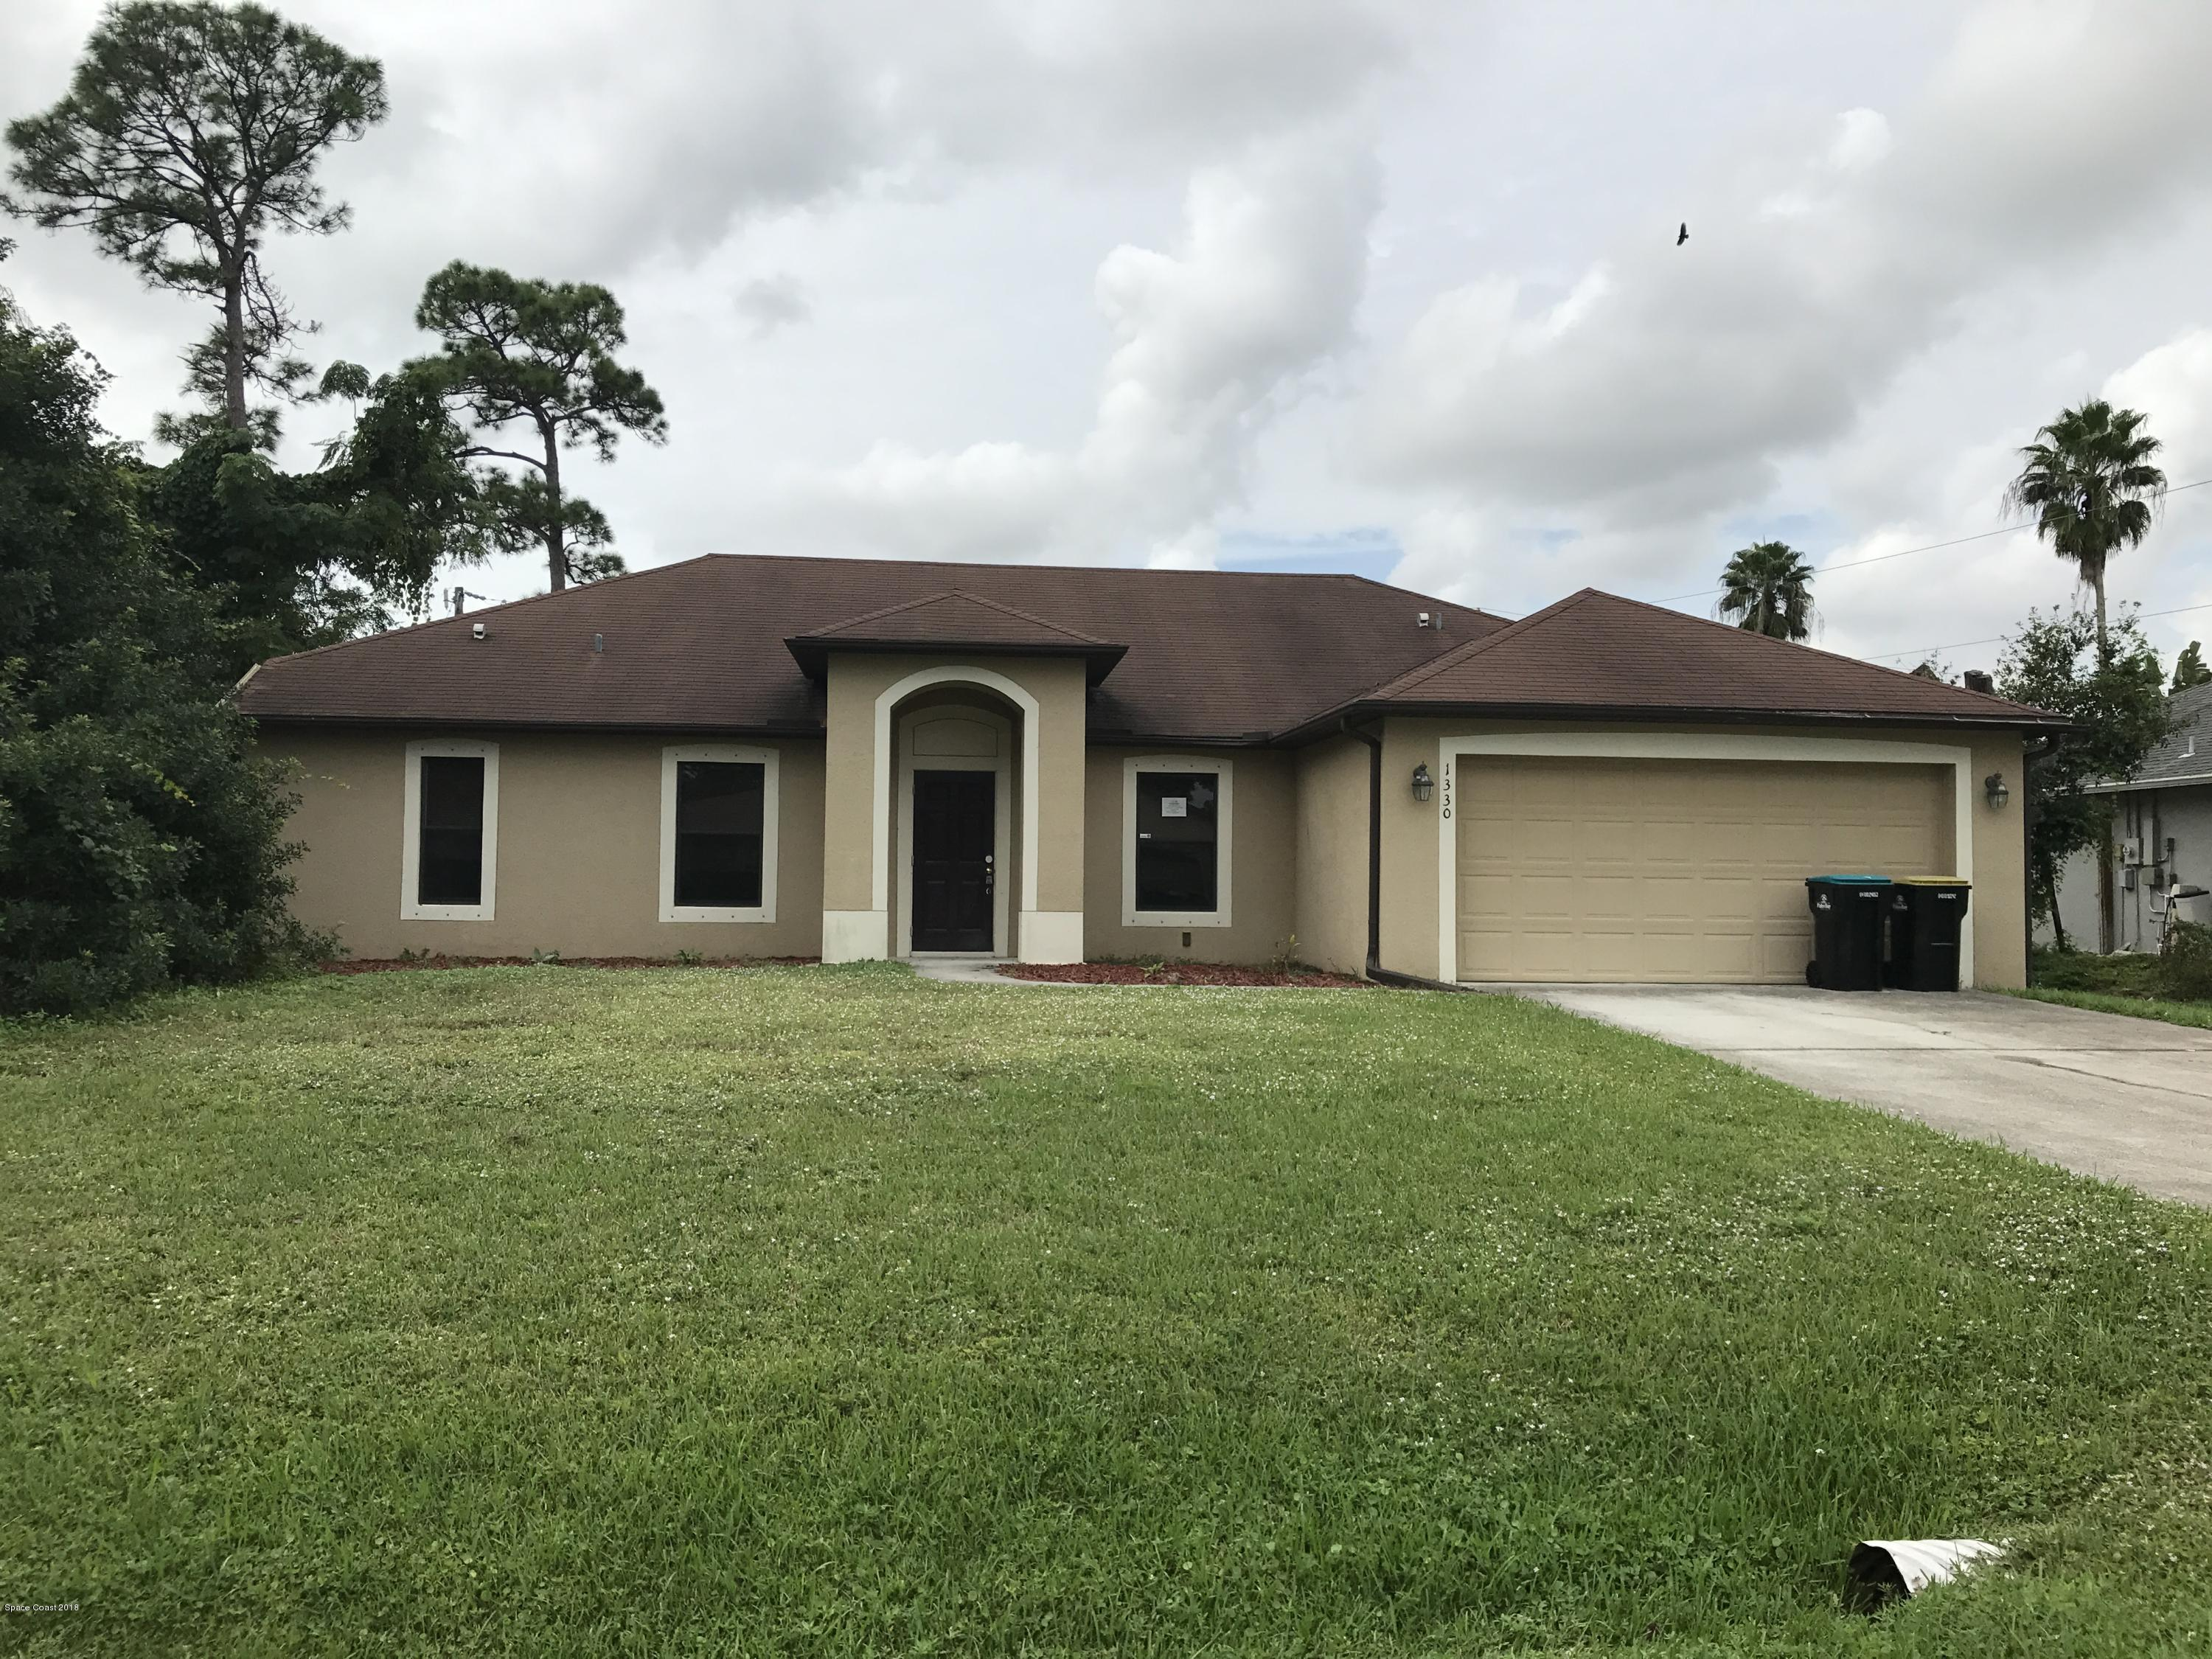 3 bed/2 bath Home in Palm Bay for $175,000